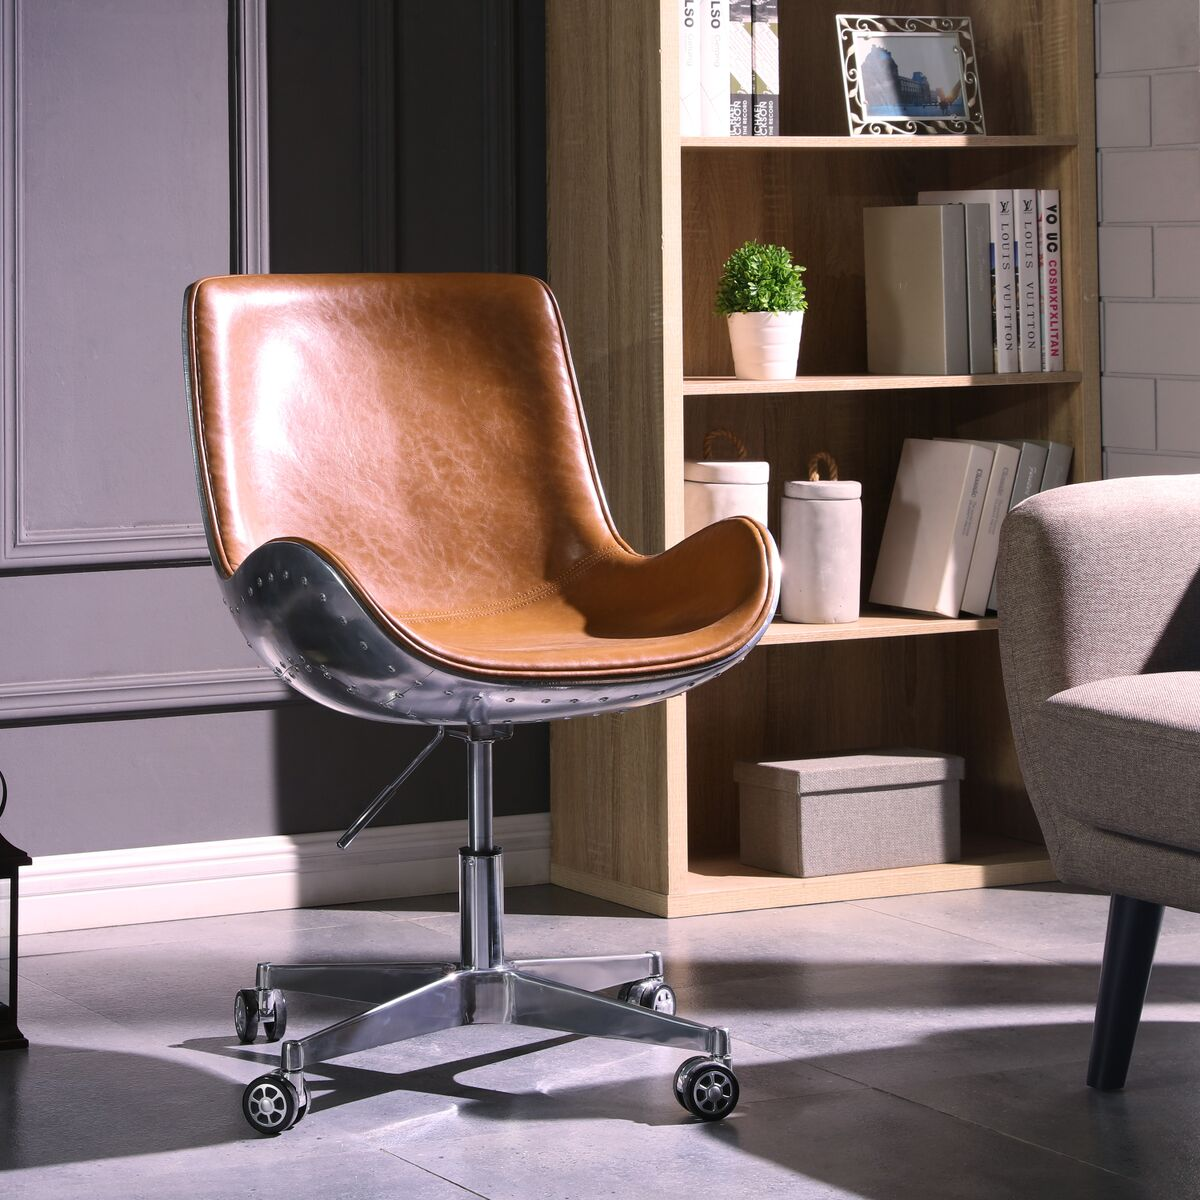 Stylish Java Brown Office Chair in Scoop Style